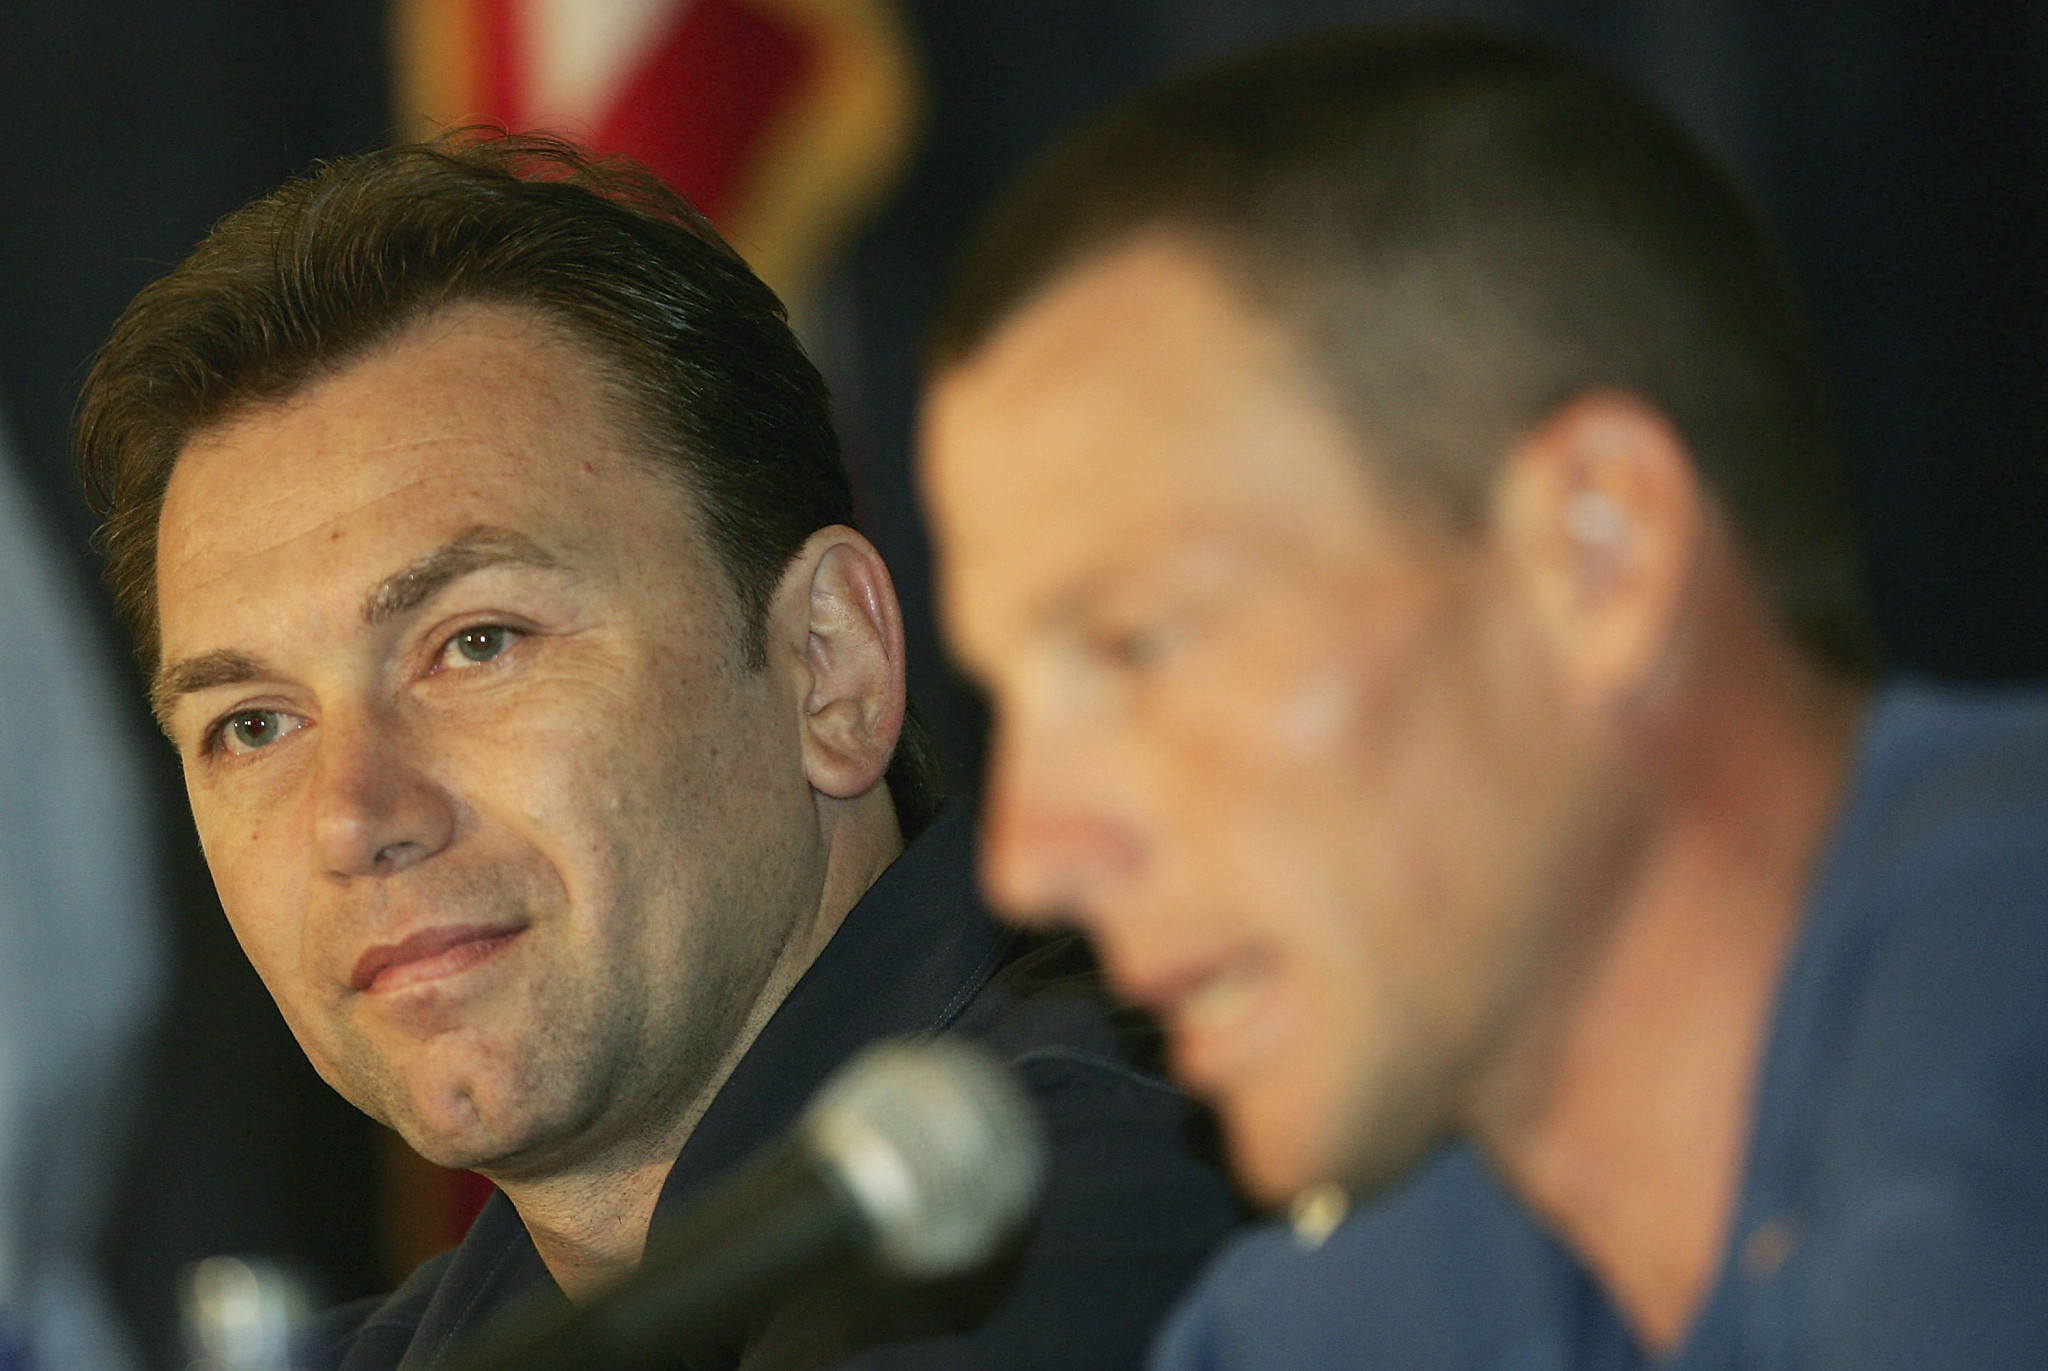 Johan Bruyneel had been sanctioned for his involvement in the doping conspiracy at US Postal ©Getty Images